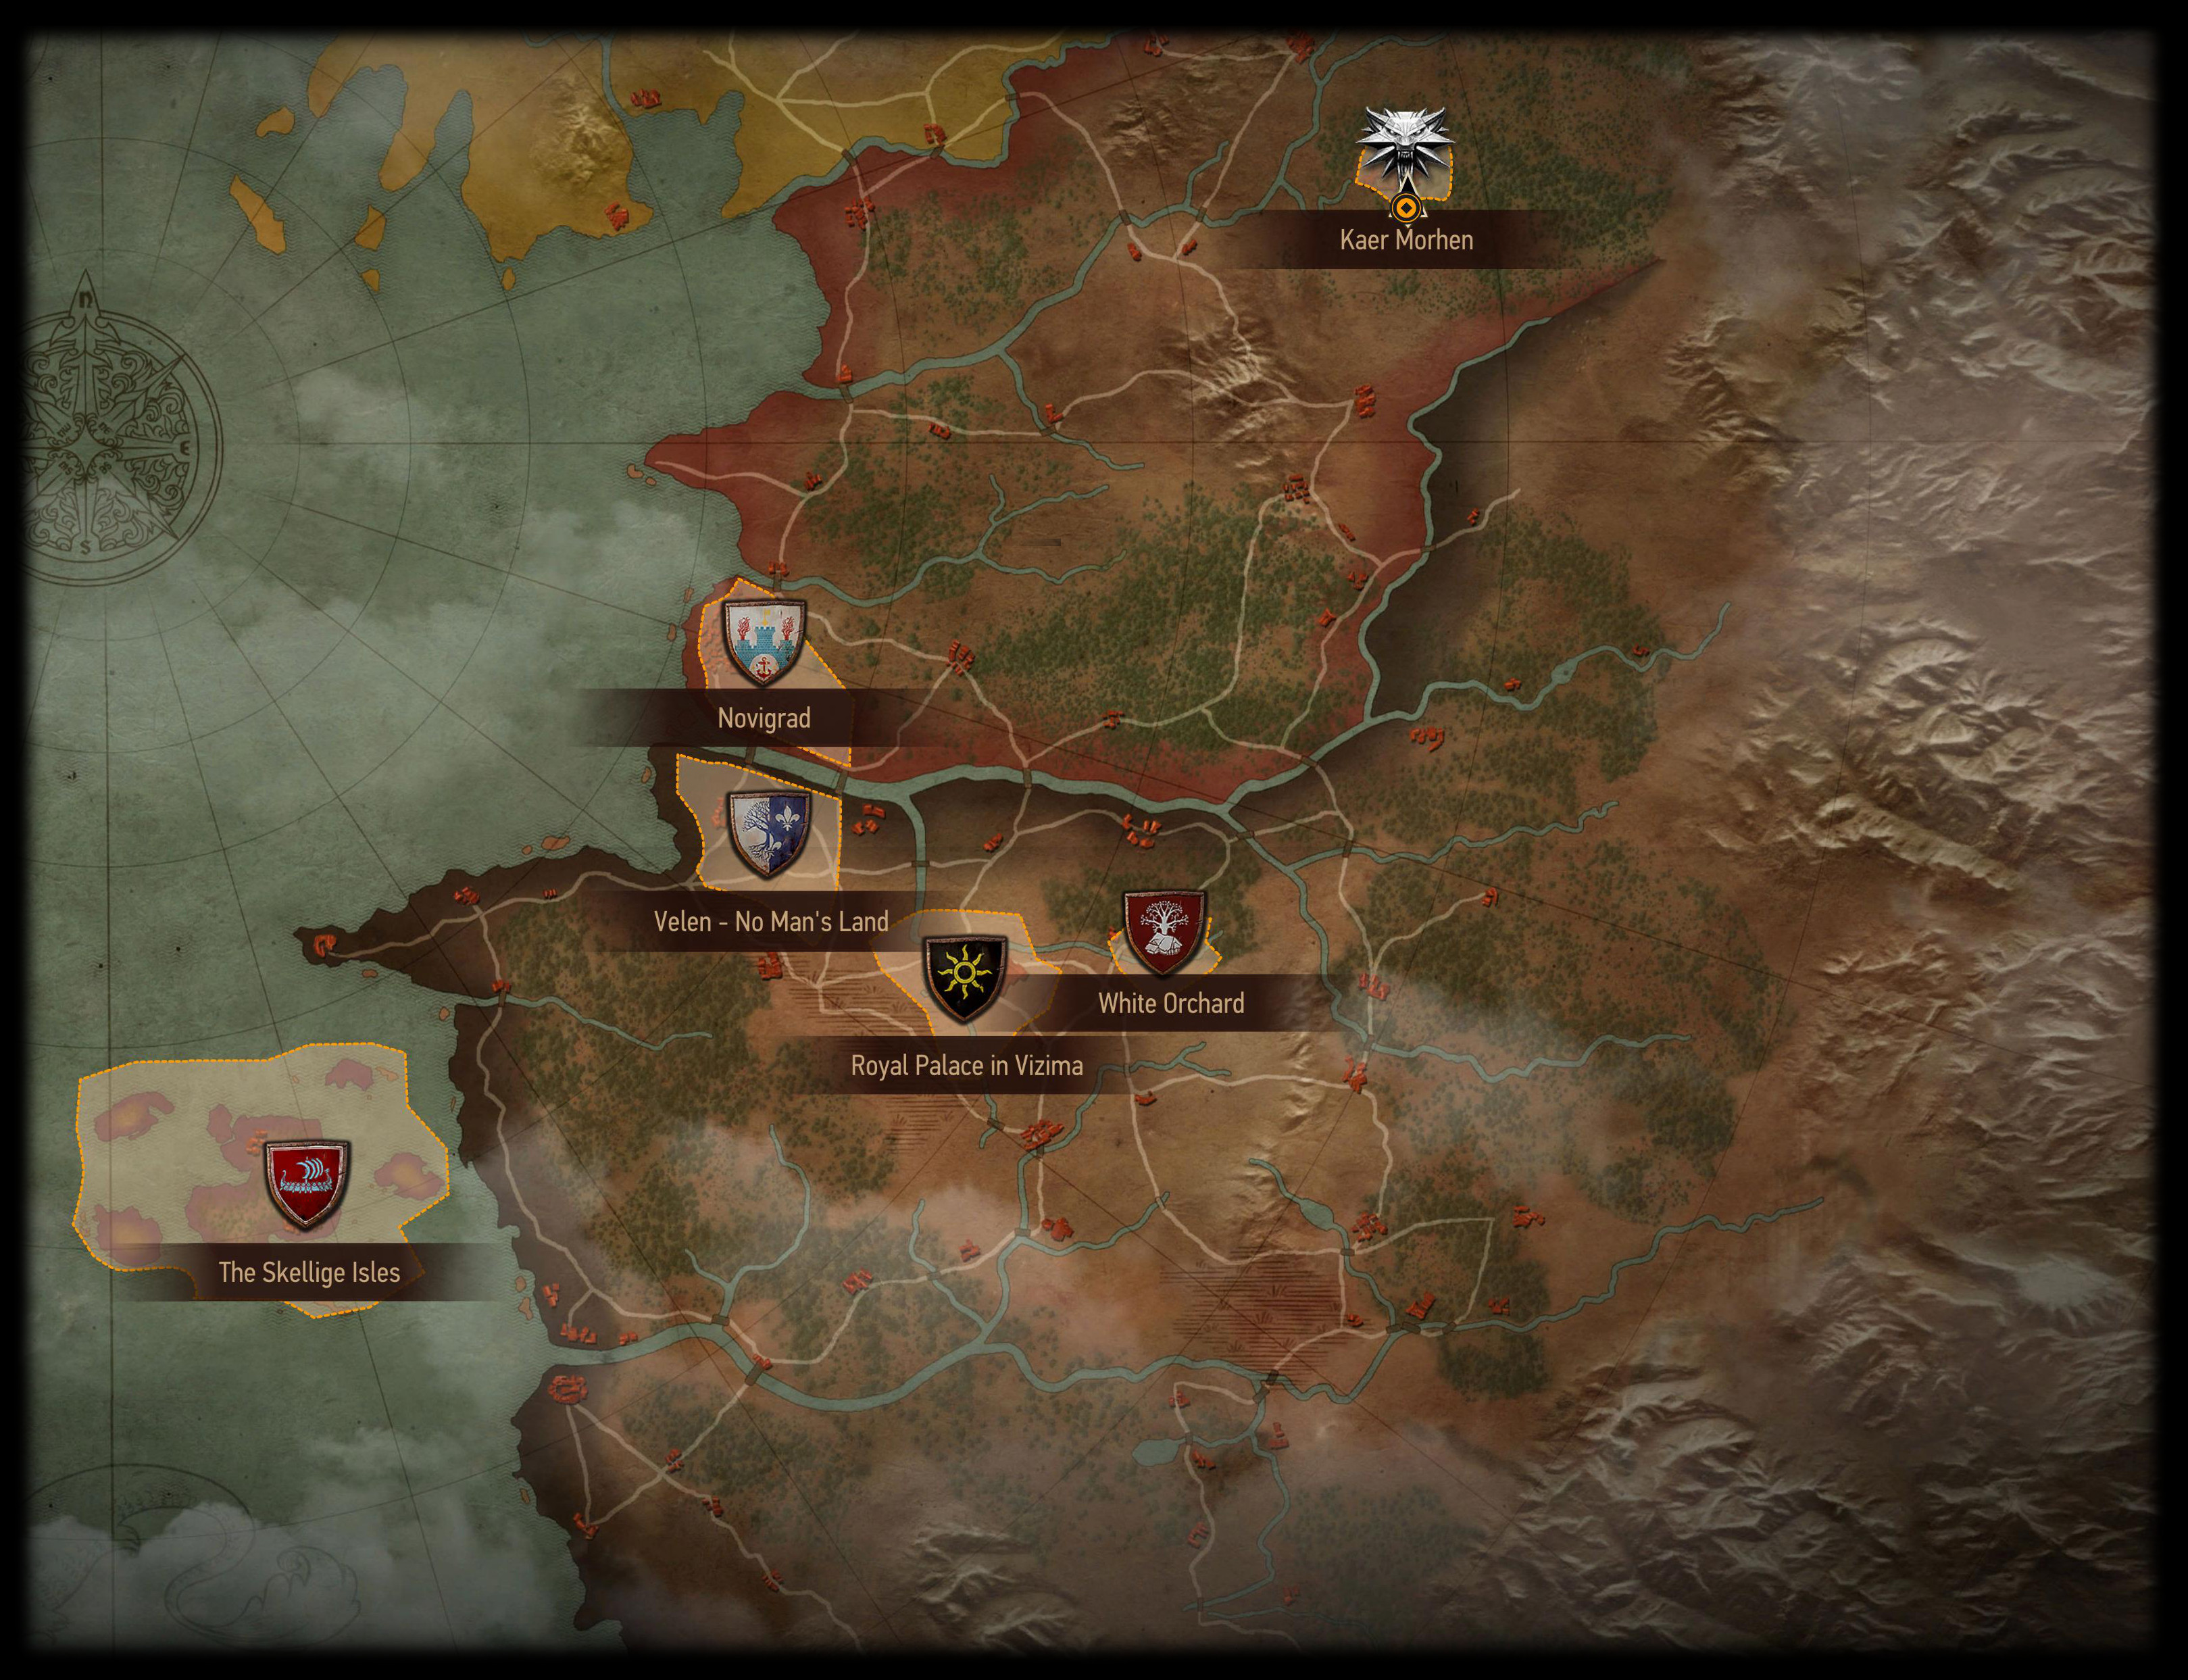 The Witcher 3 locations | Witcher Wiki | Fandom on witcher 3 armor sets, witcher 3 all maps, the witcher map detailed, witcher 3 cave of ruins,